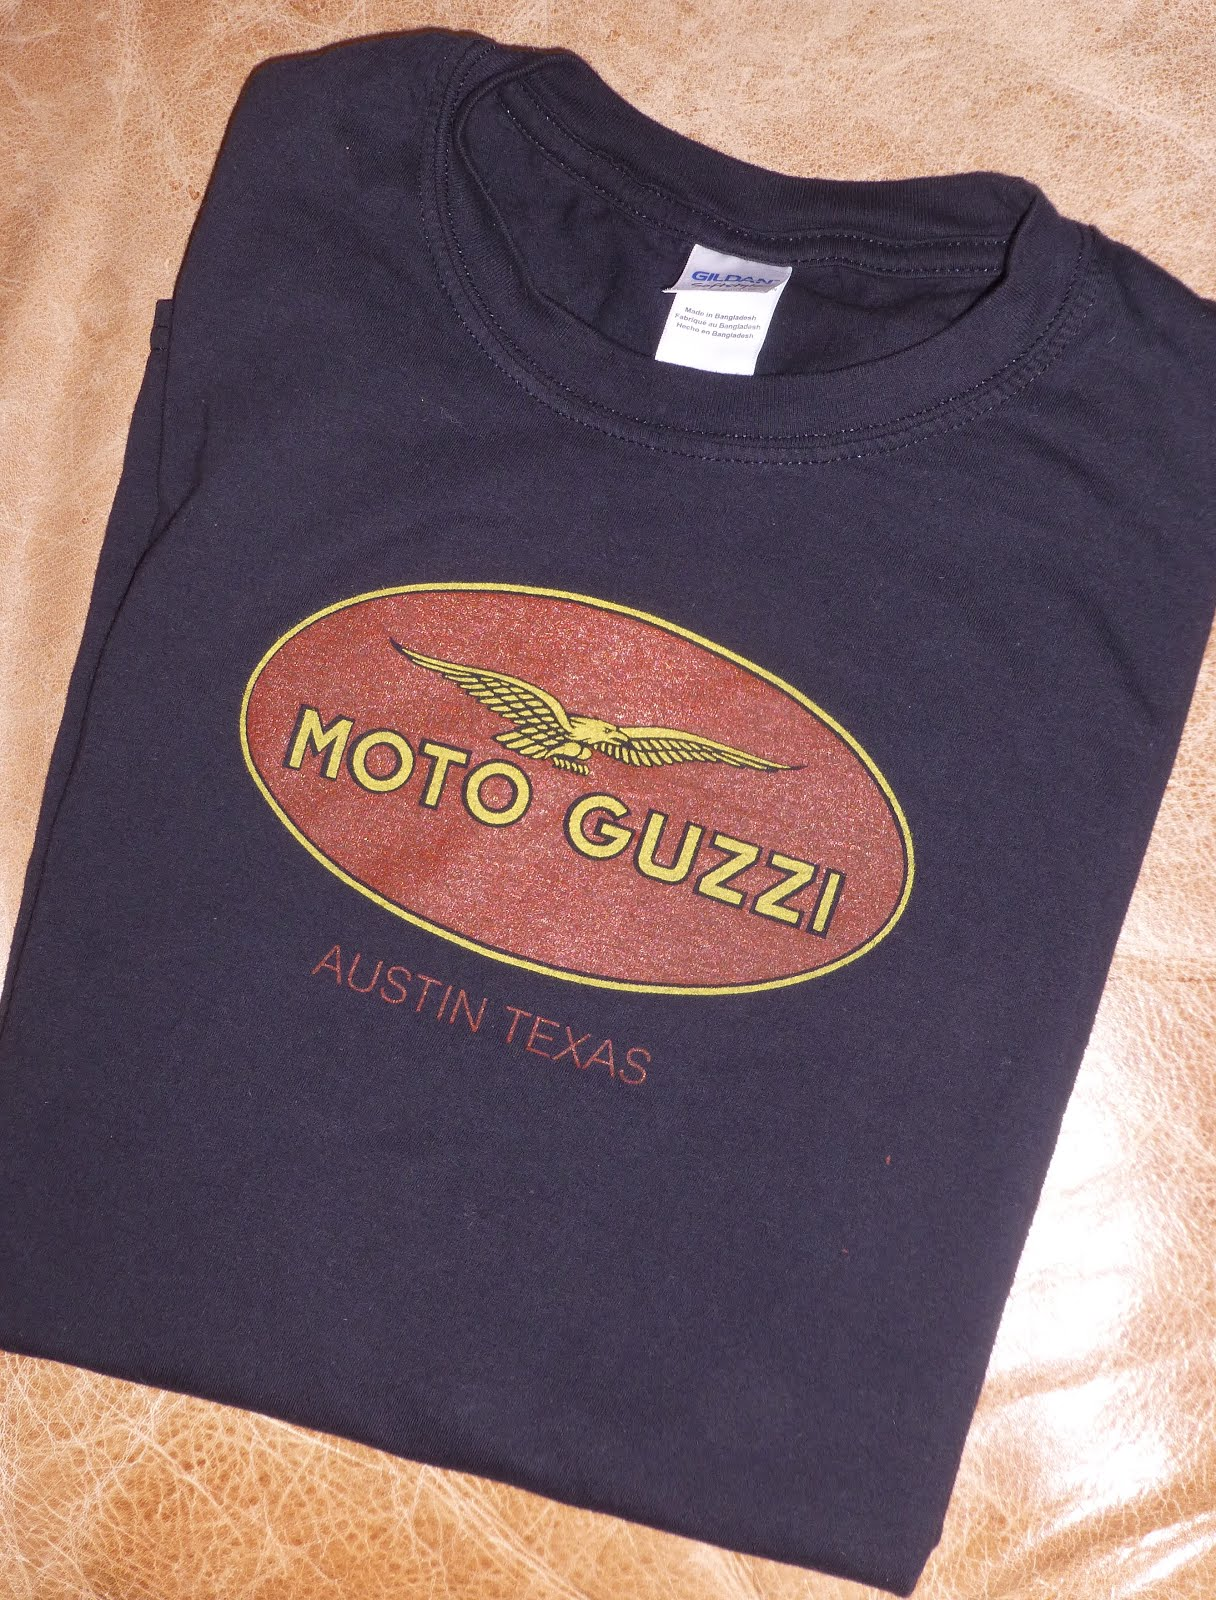 Shopping for a Guzzi in Central Texas